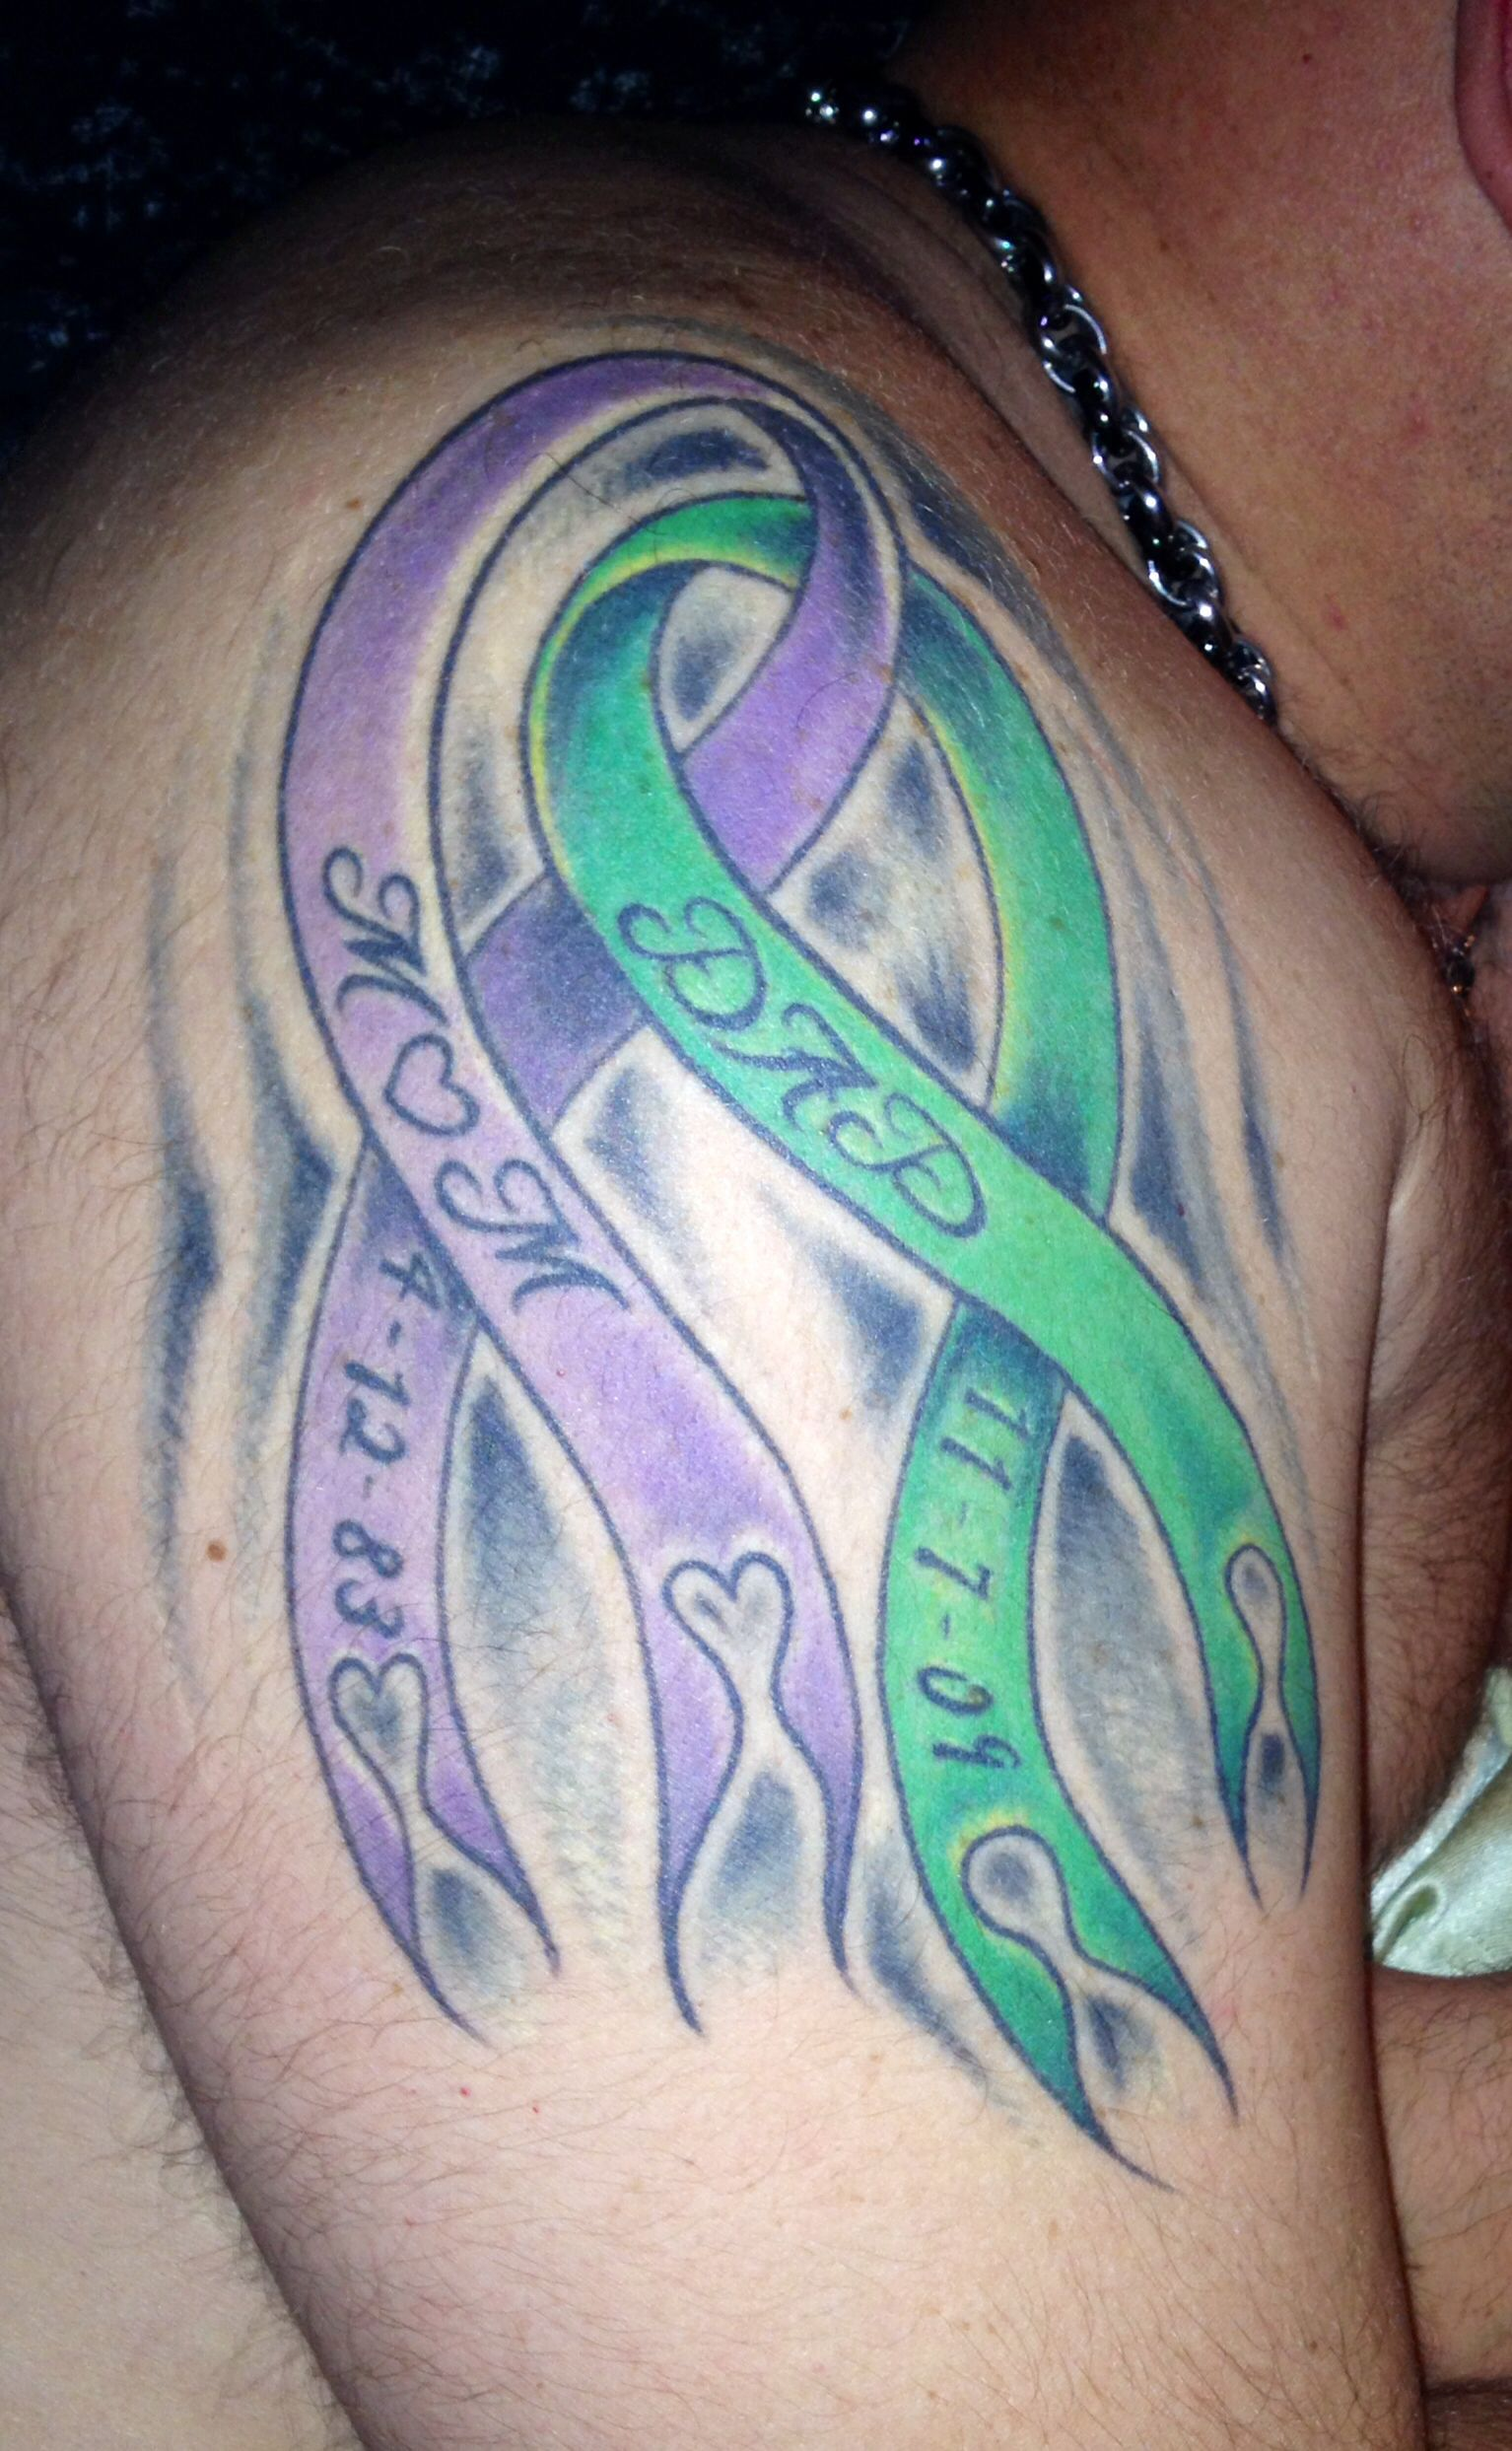 Billys Memorial Tats To His Mom Dad Stomach Cancer Violet